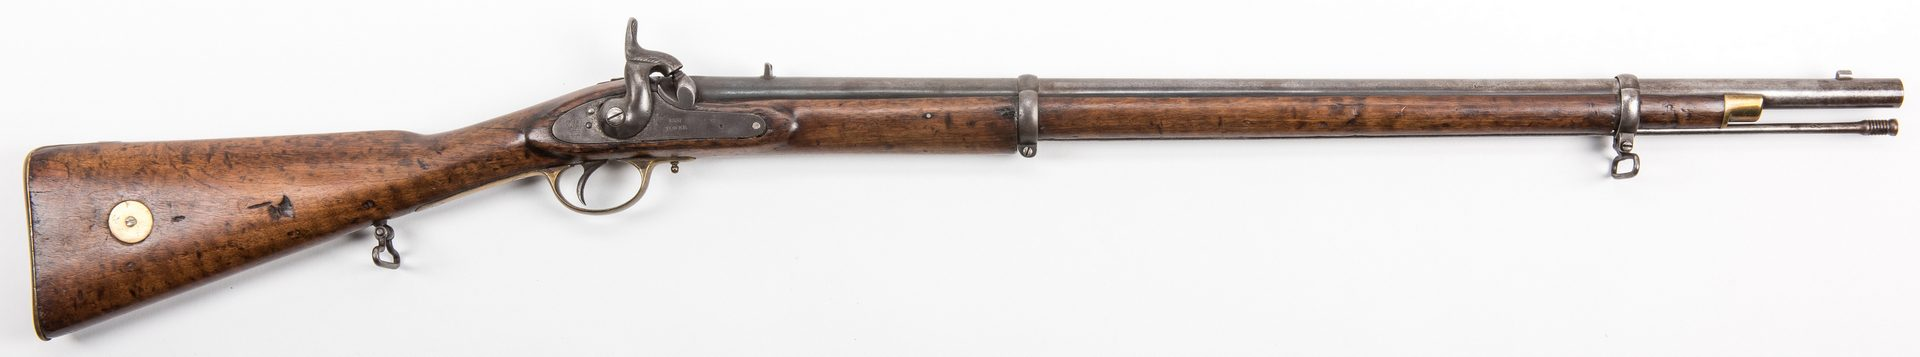 Lot 522: Civil War 1853 Pattern Rifled Enfield Tower Rifle